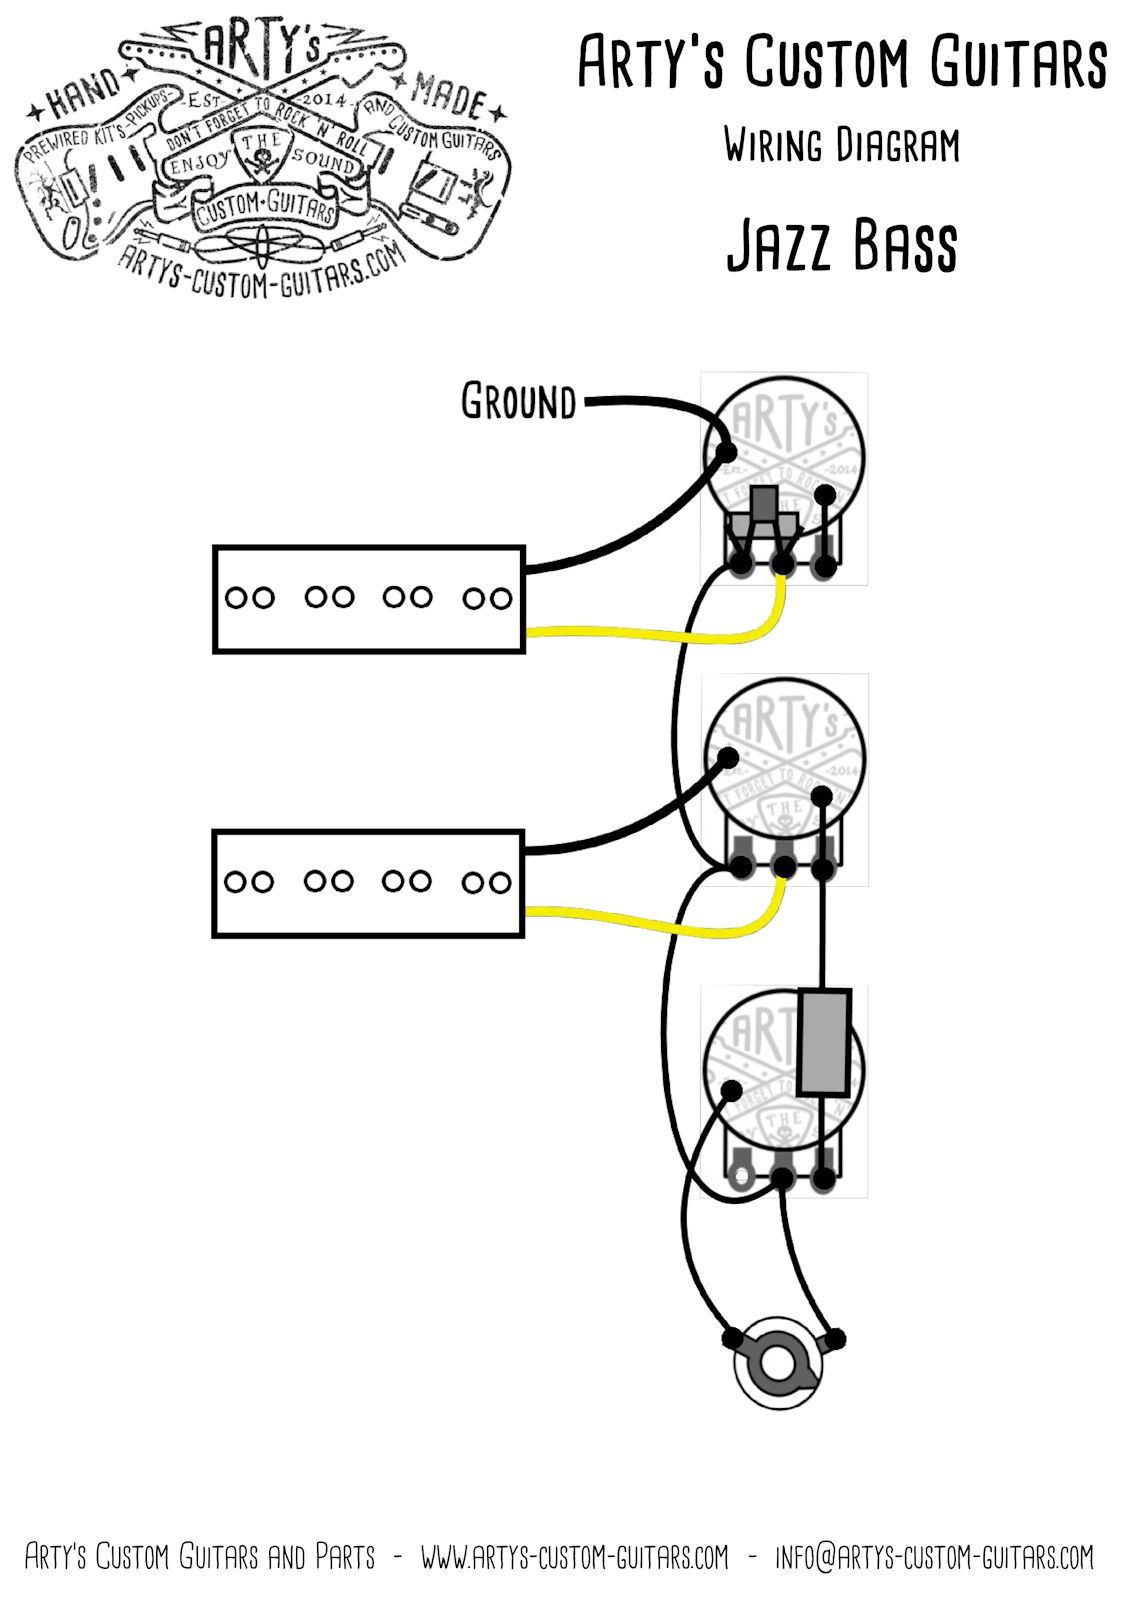 J Bass Balance Pre Wired Kit Jazz Wiring Harness Assembly In Diagram For Guitar Artys Custom Guitars Vintage Prewired Precision P